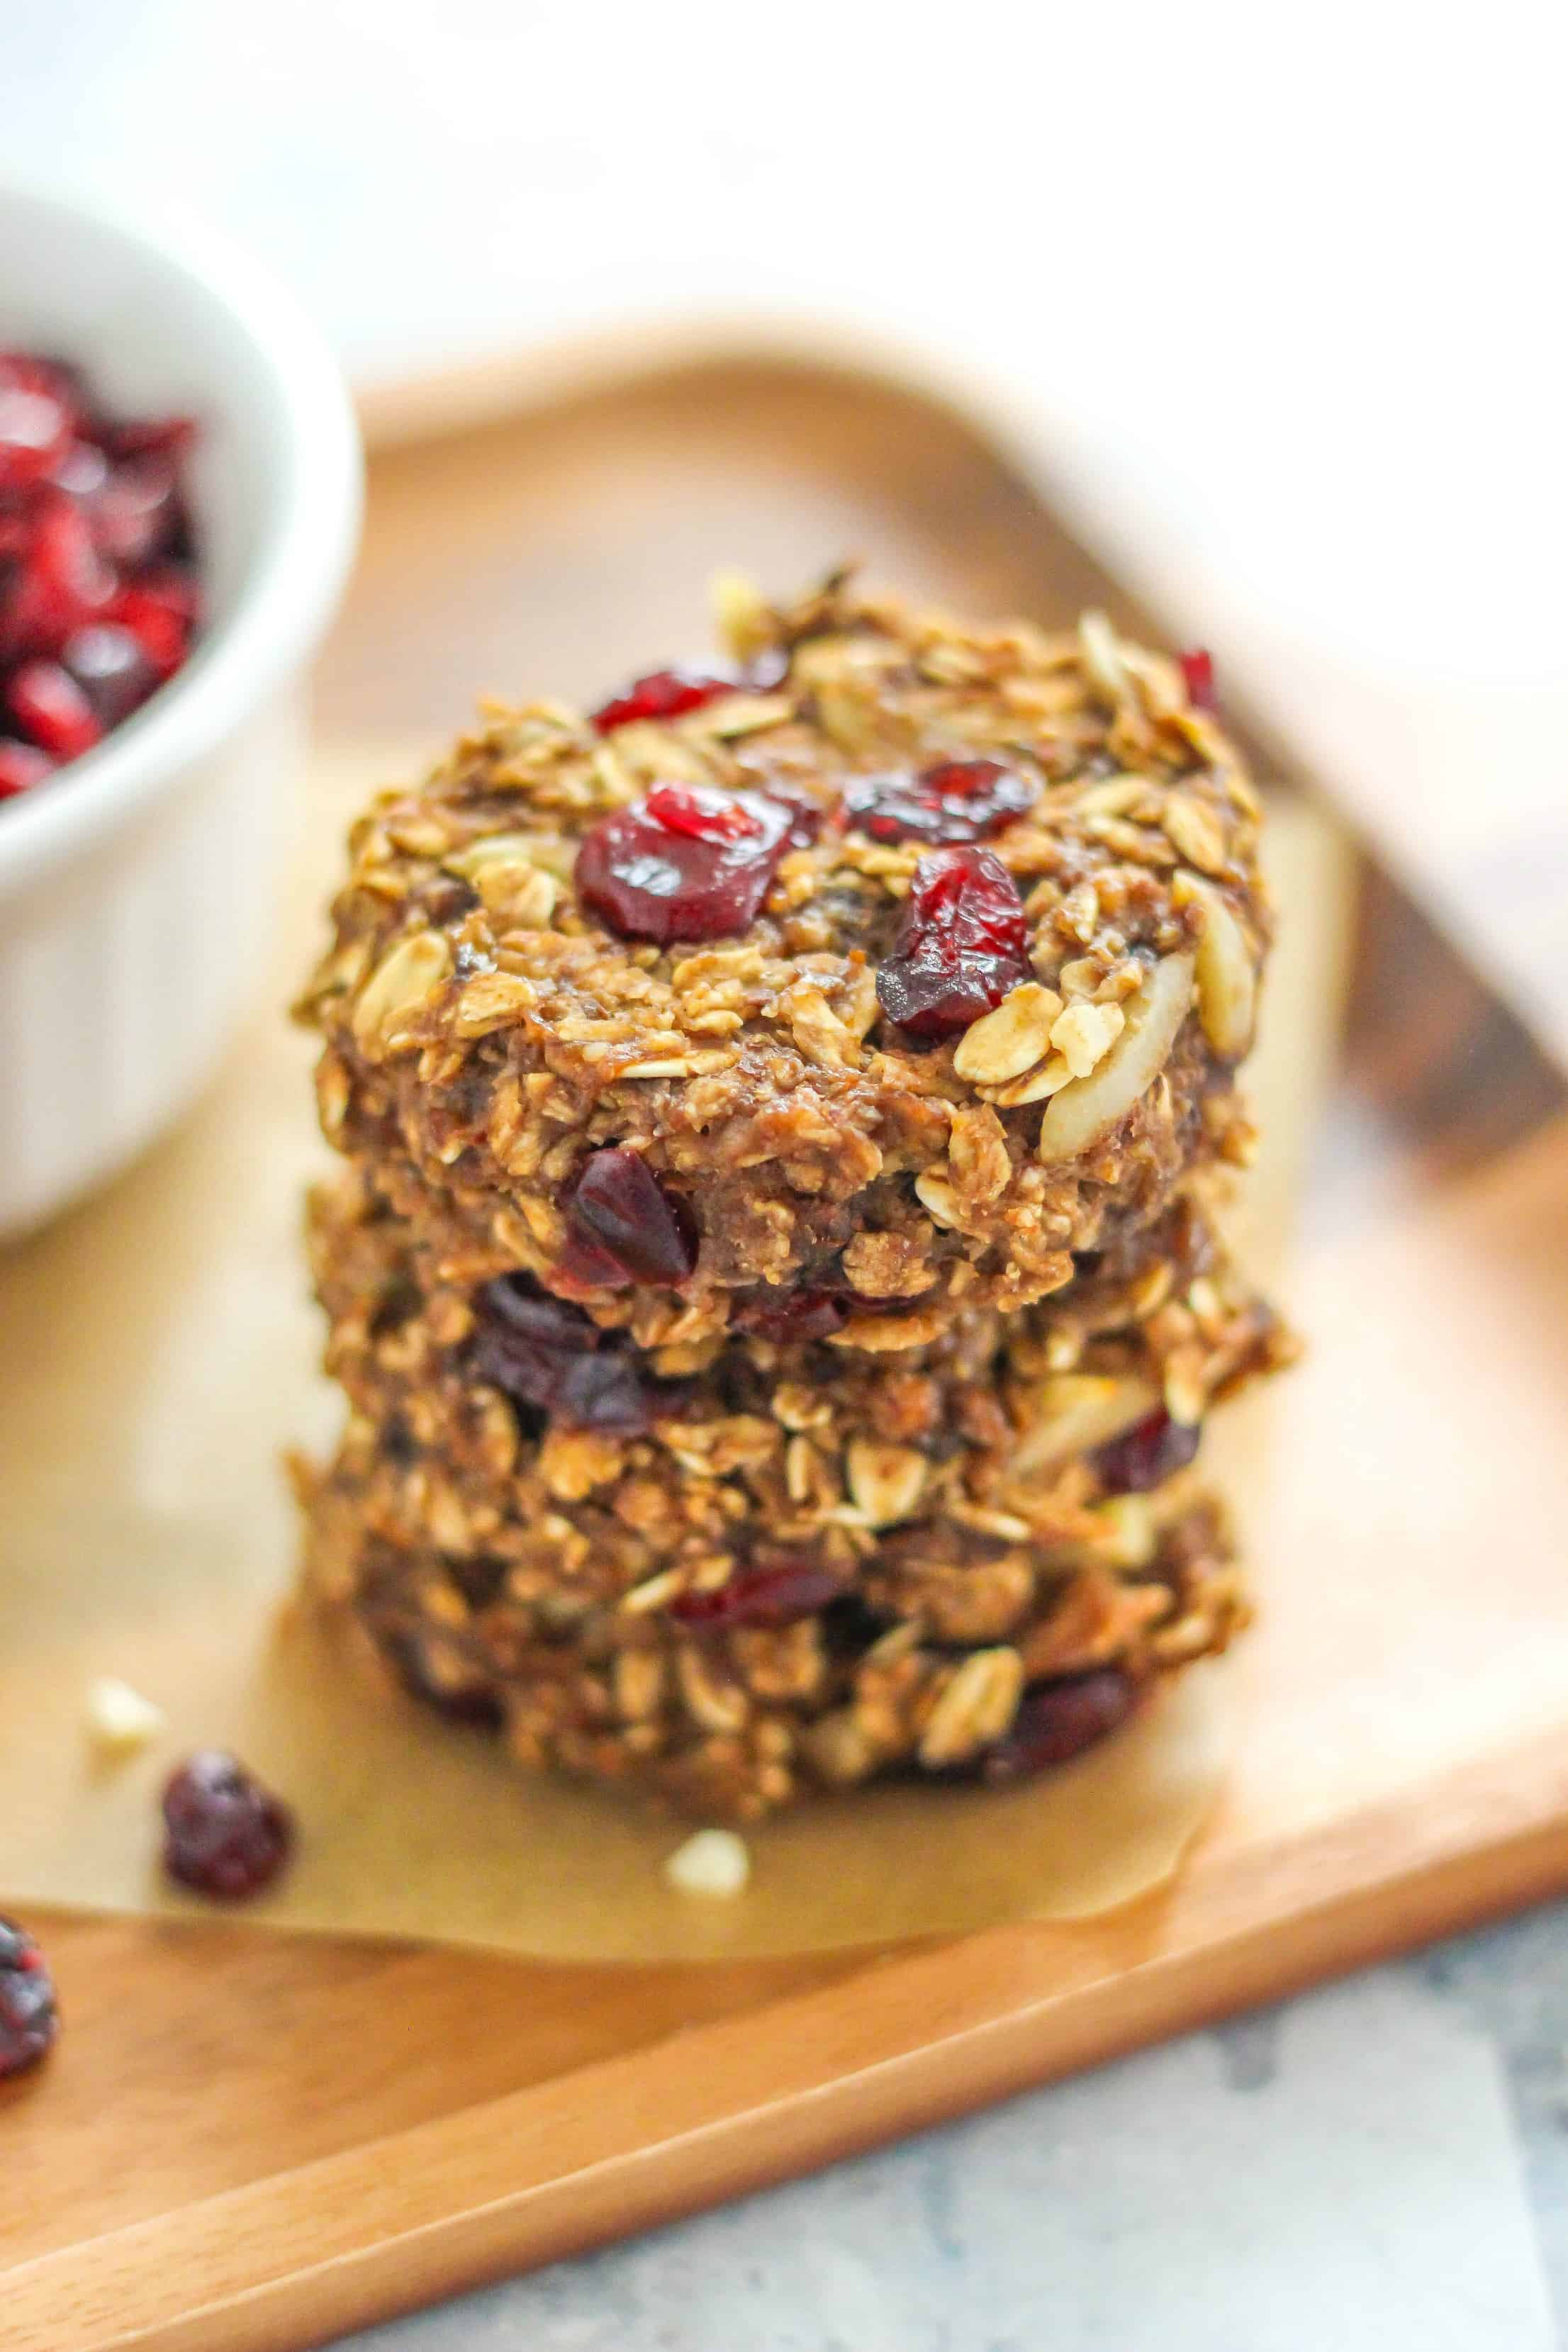 Cranberry and Almond Oatmeal Cookies are the ultimate fall cookie recipe . Made with hearty wholegrain, almonds, and dried cranberries. Great for breakfast!